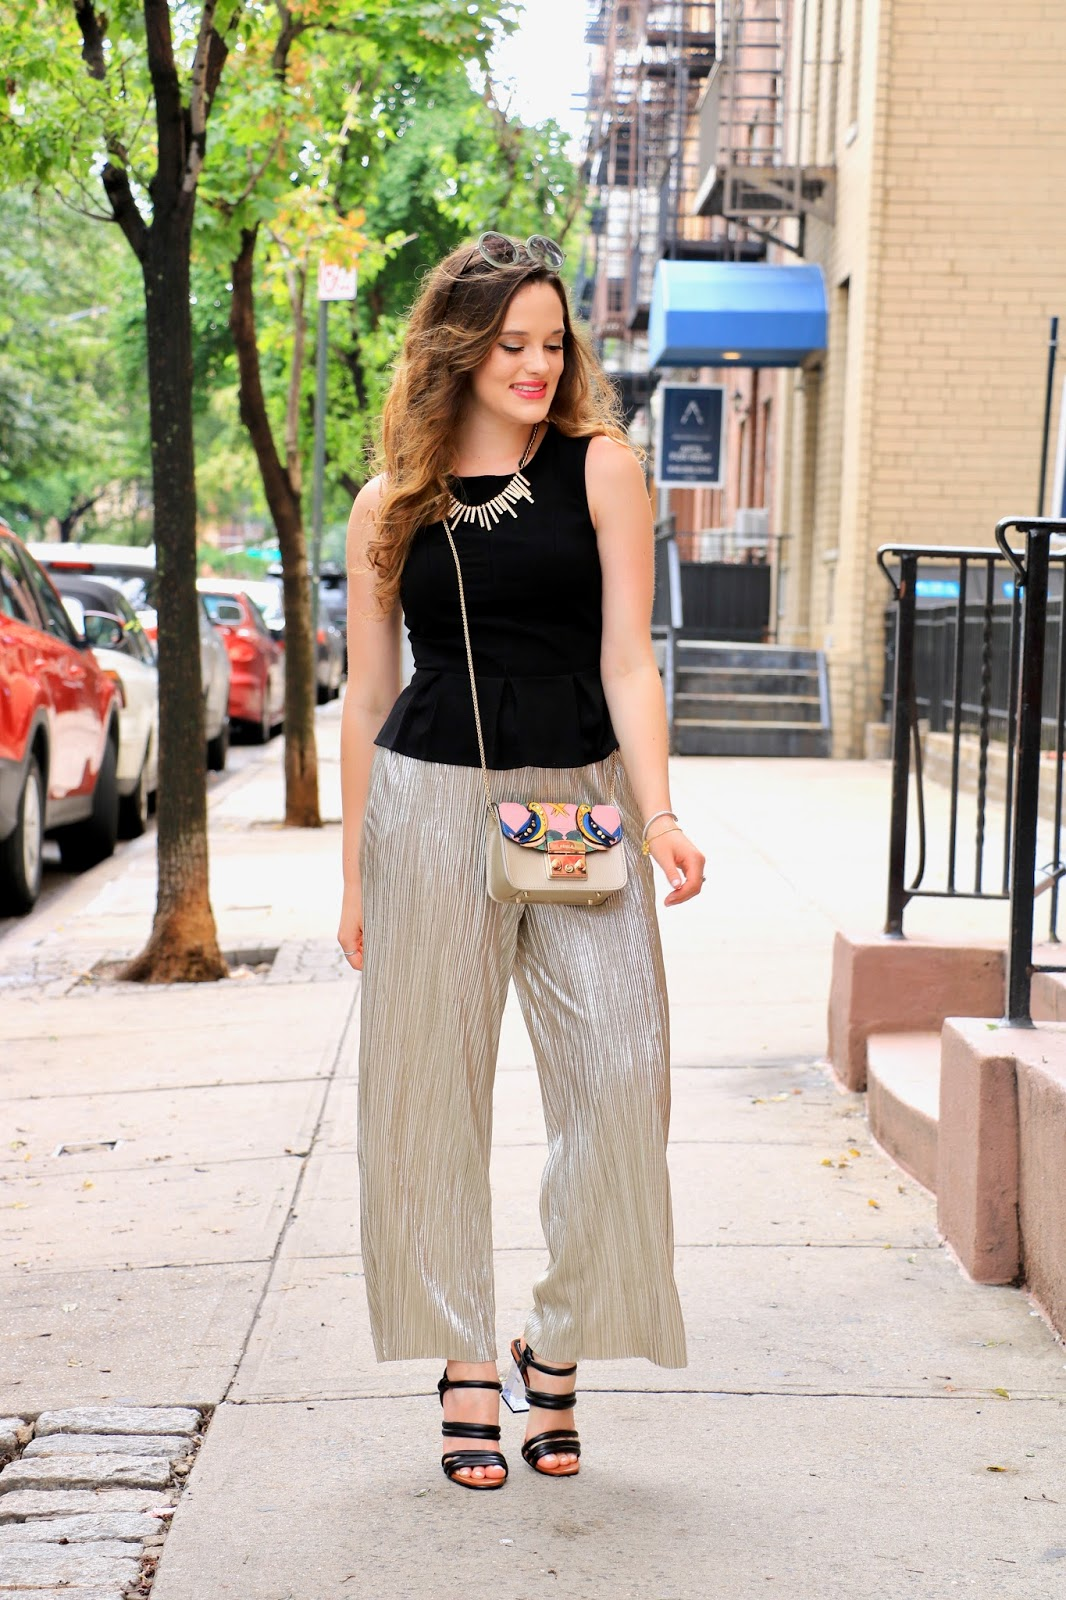 nyc fashion blogger Kathleen Harper wearing gold flowy pants and a black peplum top